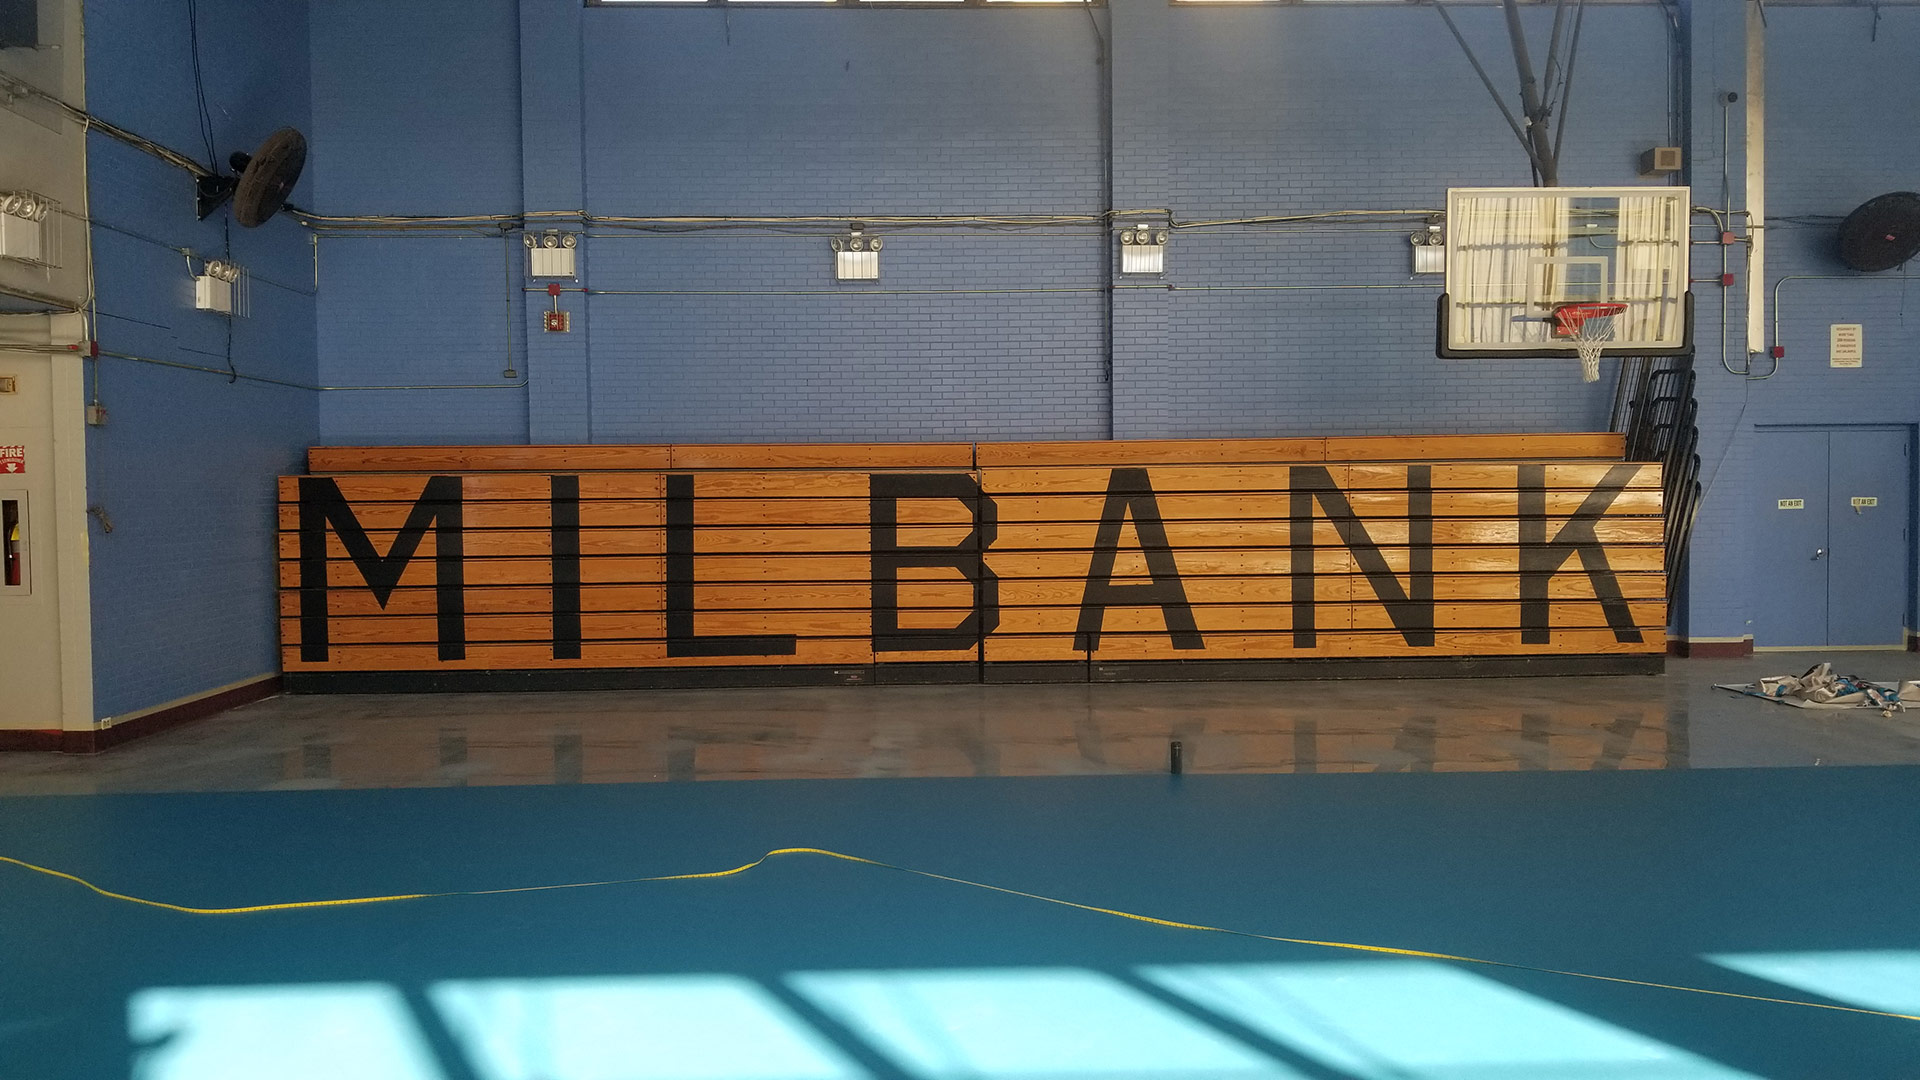 Indoor court at Dunlevy Milbank Center in New York, NY